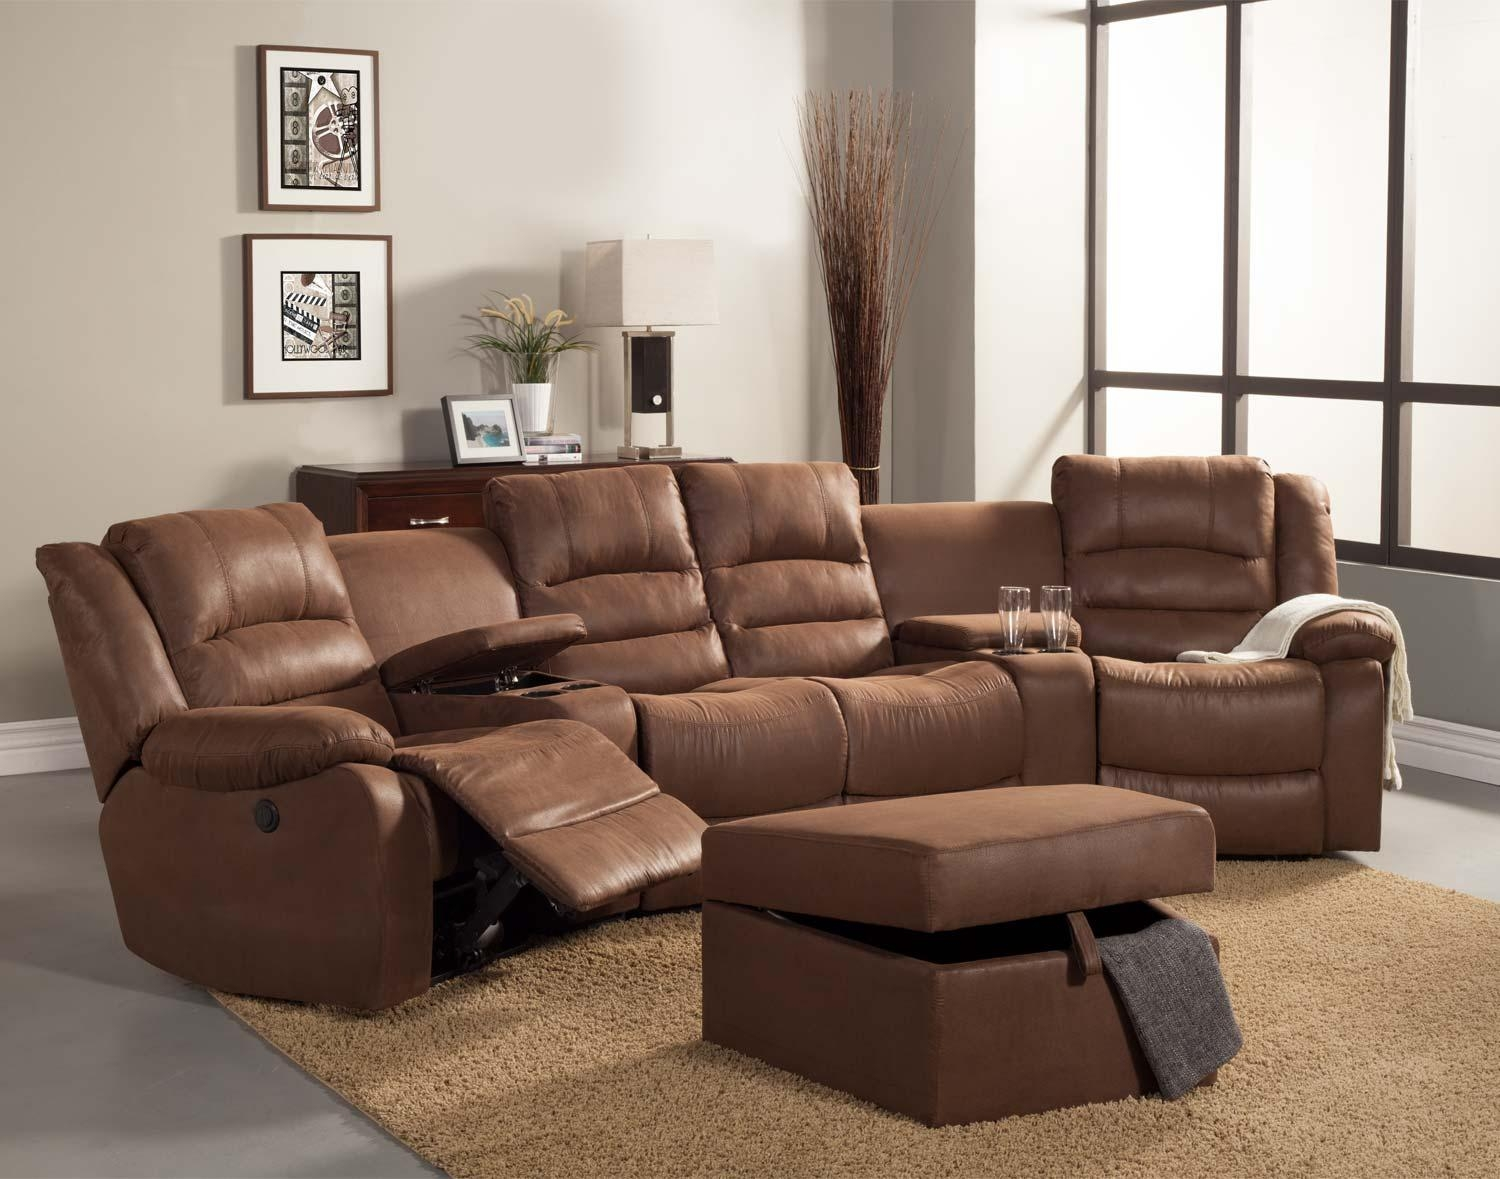 Homelegance Tucker Sectional Sofa Set – Brown – Bomber Jacket With Bomber Leather Sofas (Image 9 of 20)